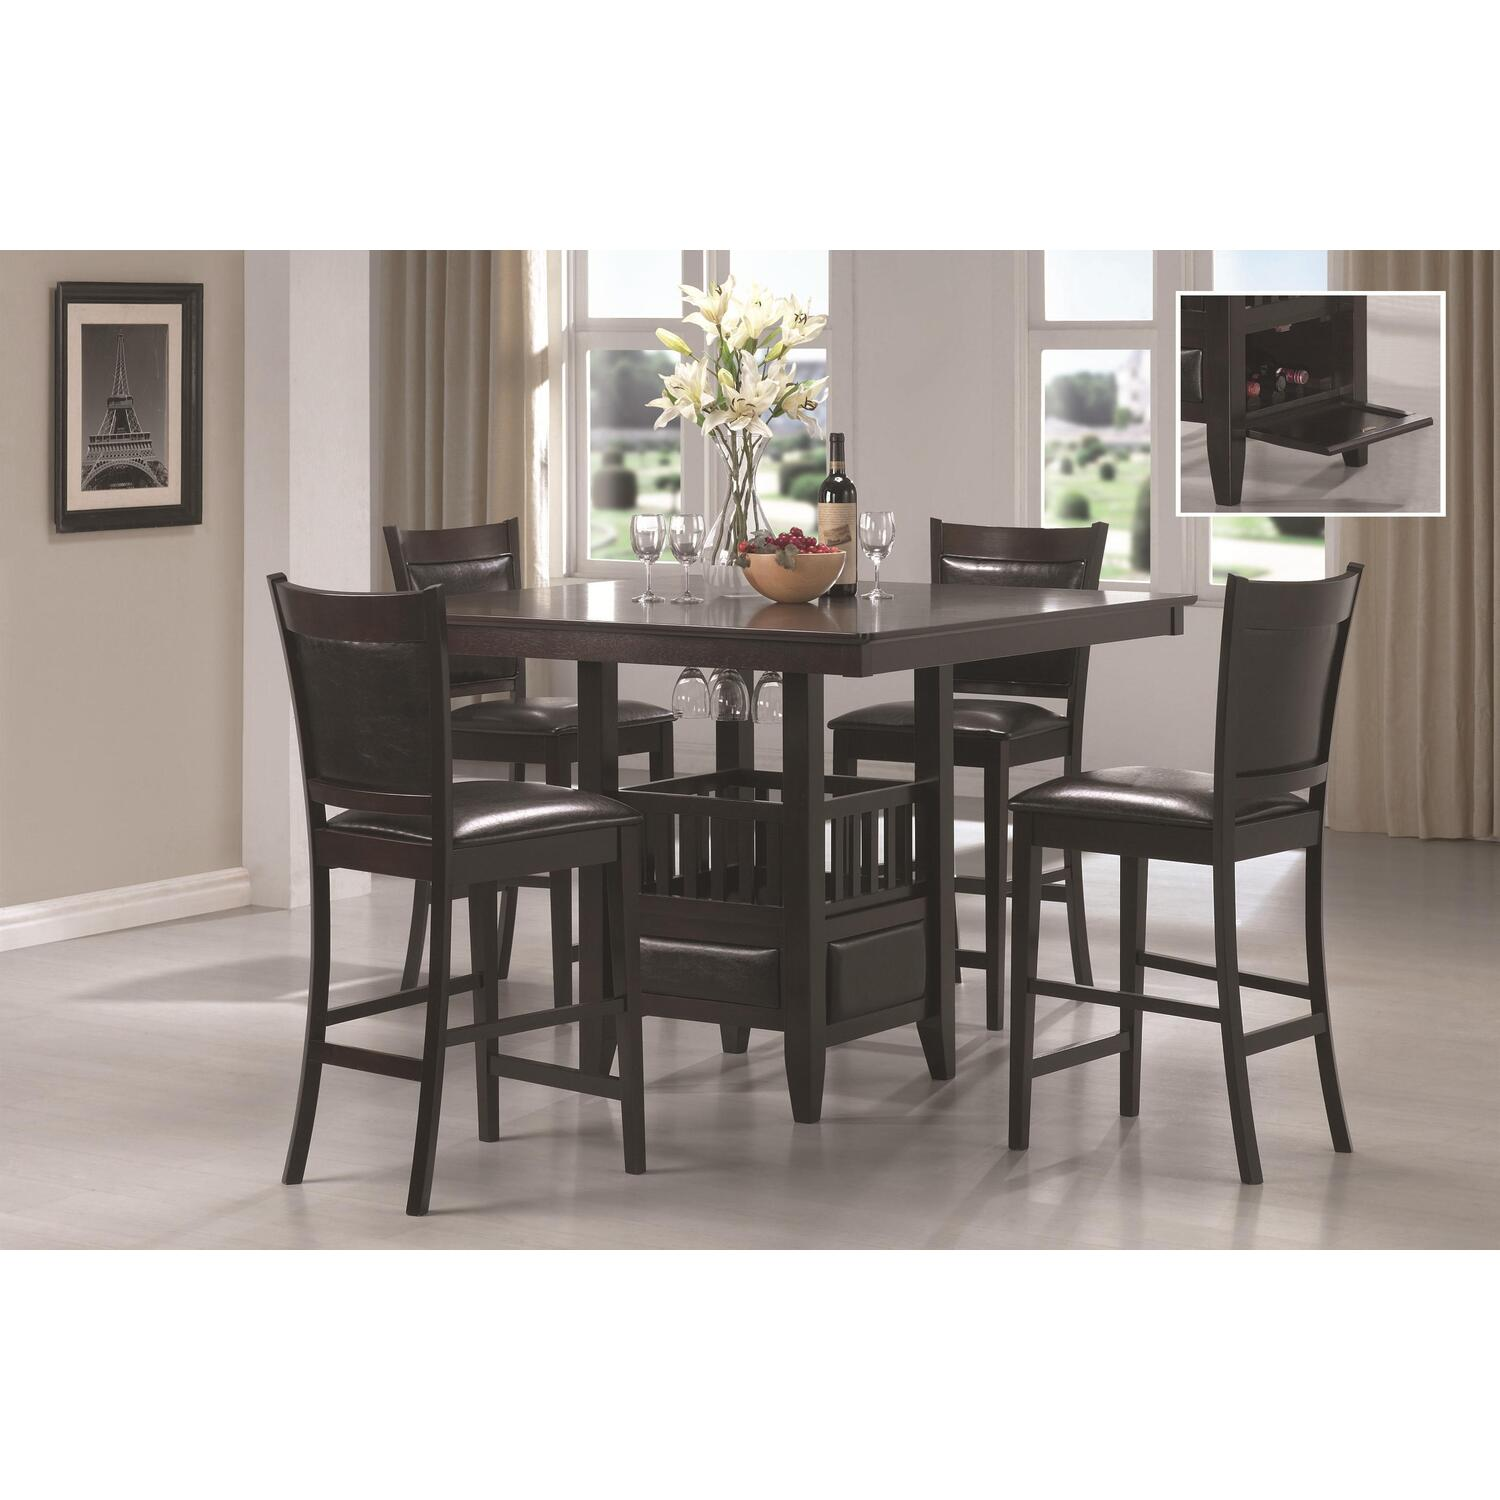 Hollywood home jaden square counter height 5 piece dining for Square dinette sets